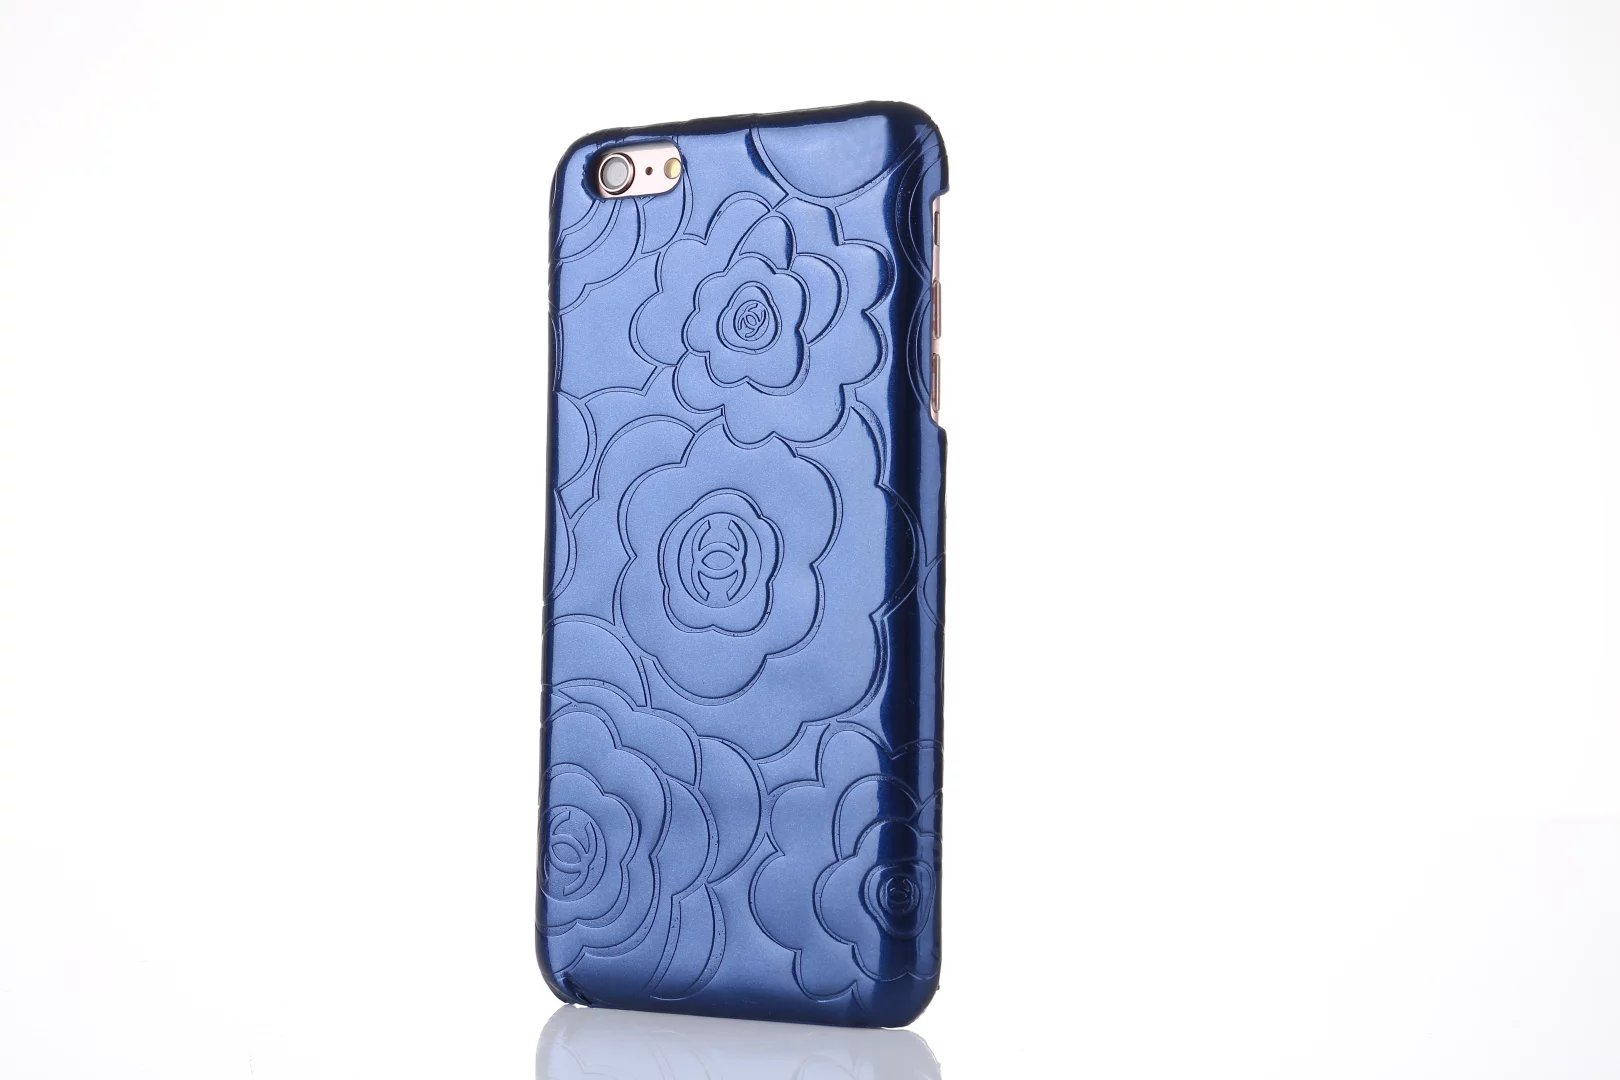 create your own iphone 6s case iphone 6s 6s case fashion iphone6s case nexus 6s leak design your iphone case youtuber phone cases iphone sticker cover iphone 6s from apple cas iphone